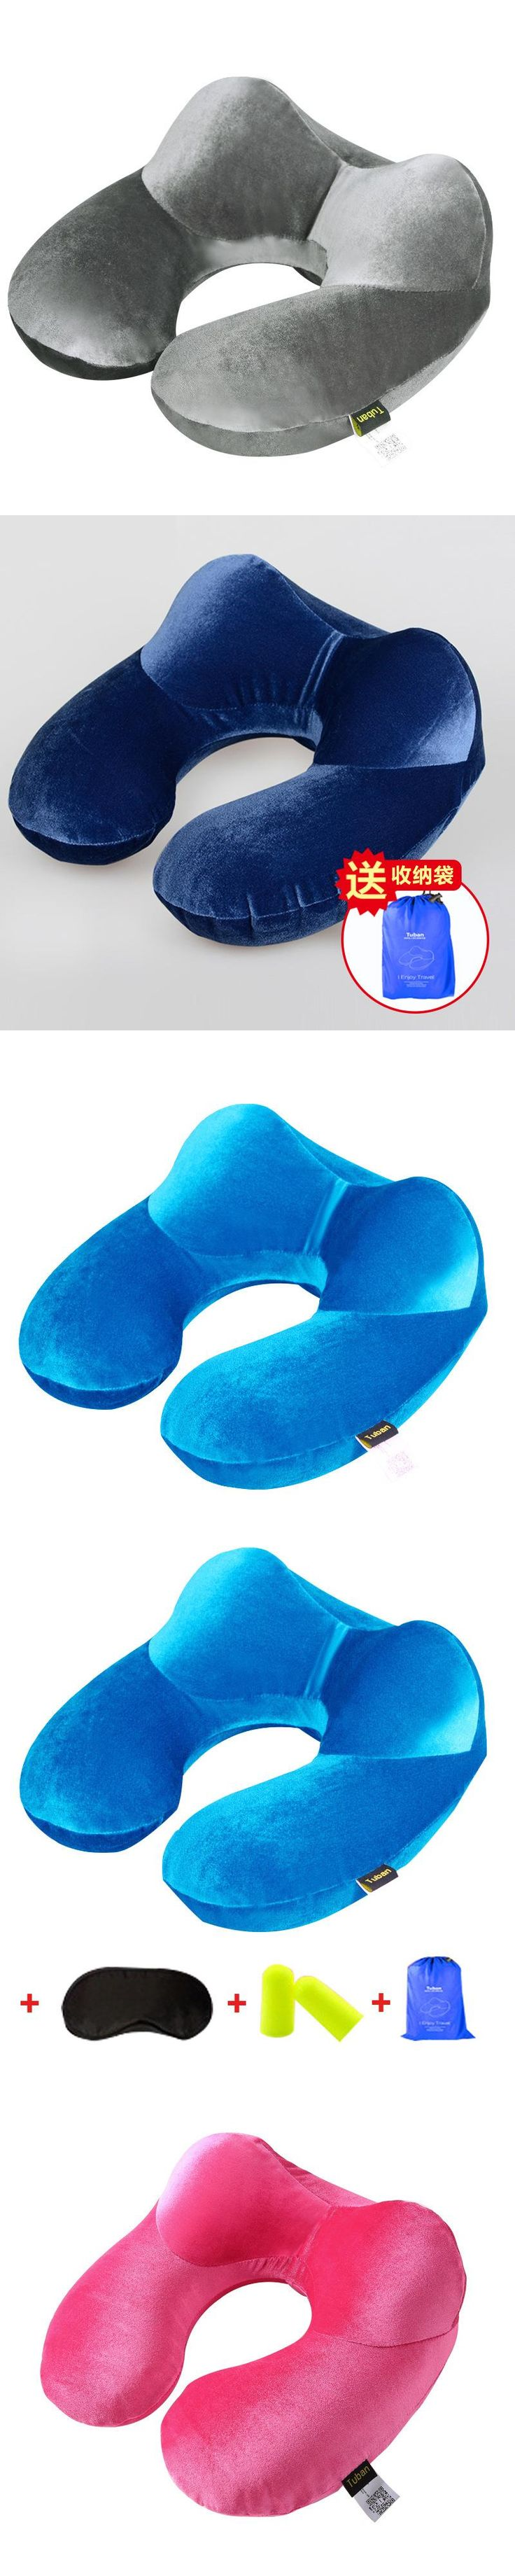 Super light U-Shape Inflatable Travel Pillow Neck Pillow Comfortable air Pillows for Sleep Airplane Earpatch+Earplug+Bag